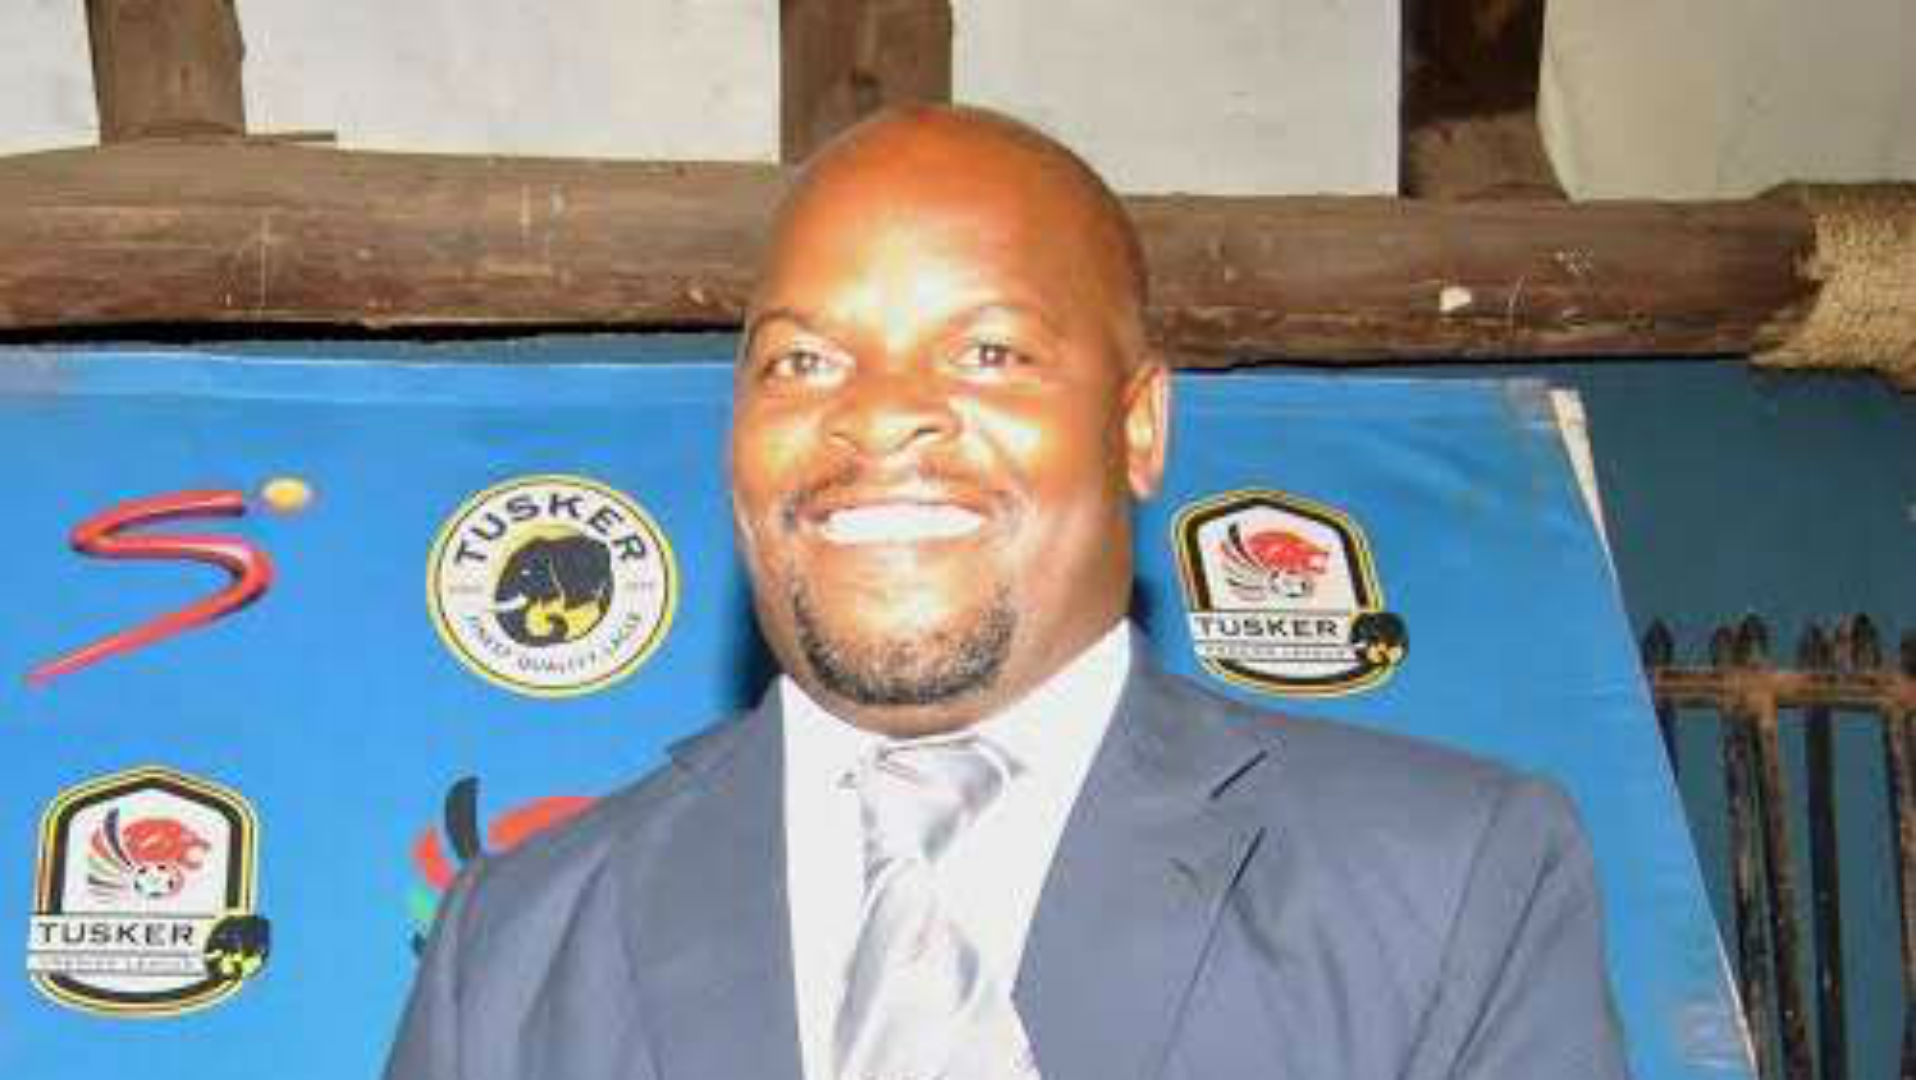 'Those messing with football in Kenya must face the law' - Adagala